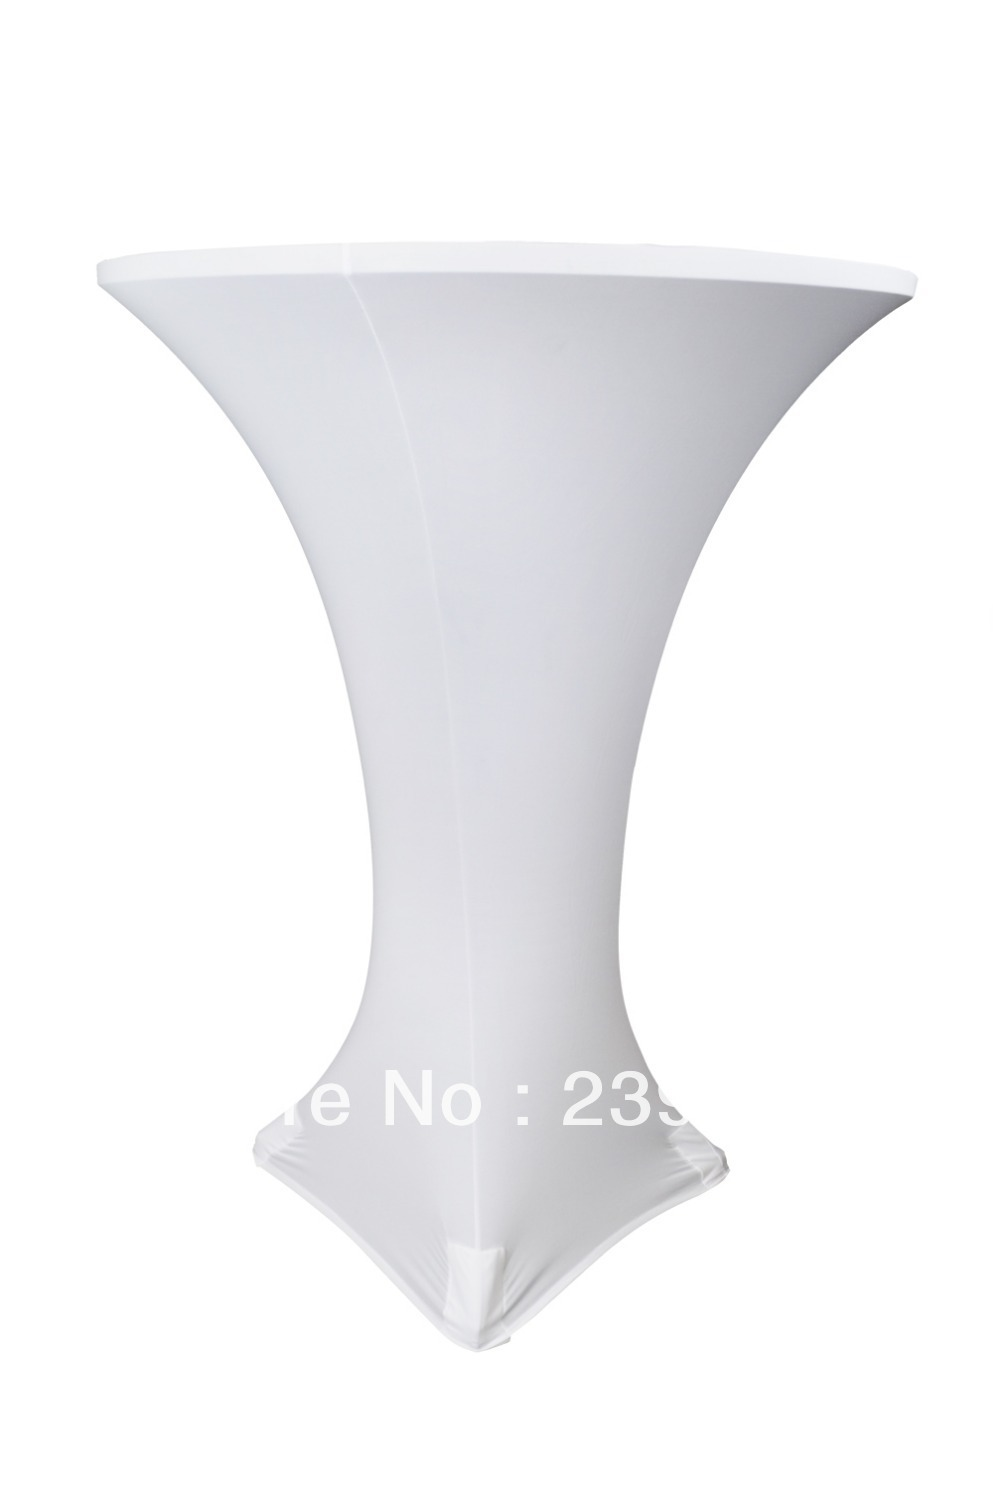 Round Plastic Table Covers With Elastic Clear Plastic Table Covers Promotion Shop For Promotional Clear